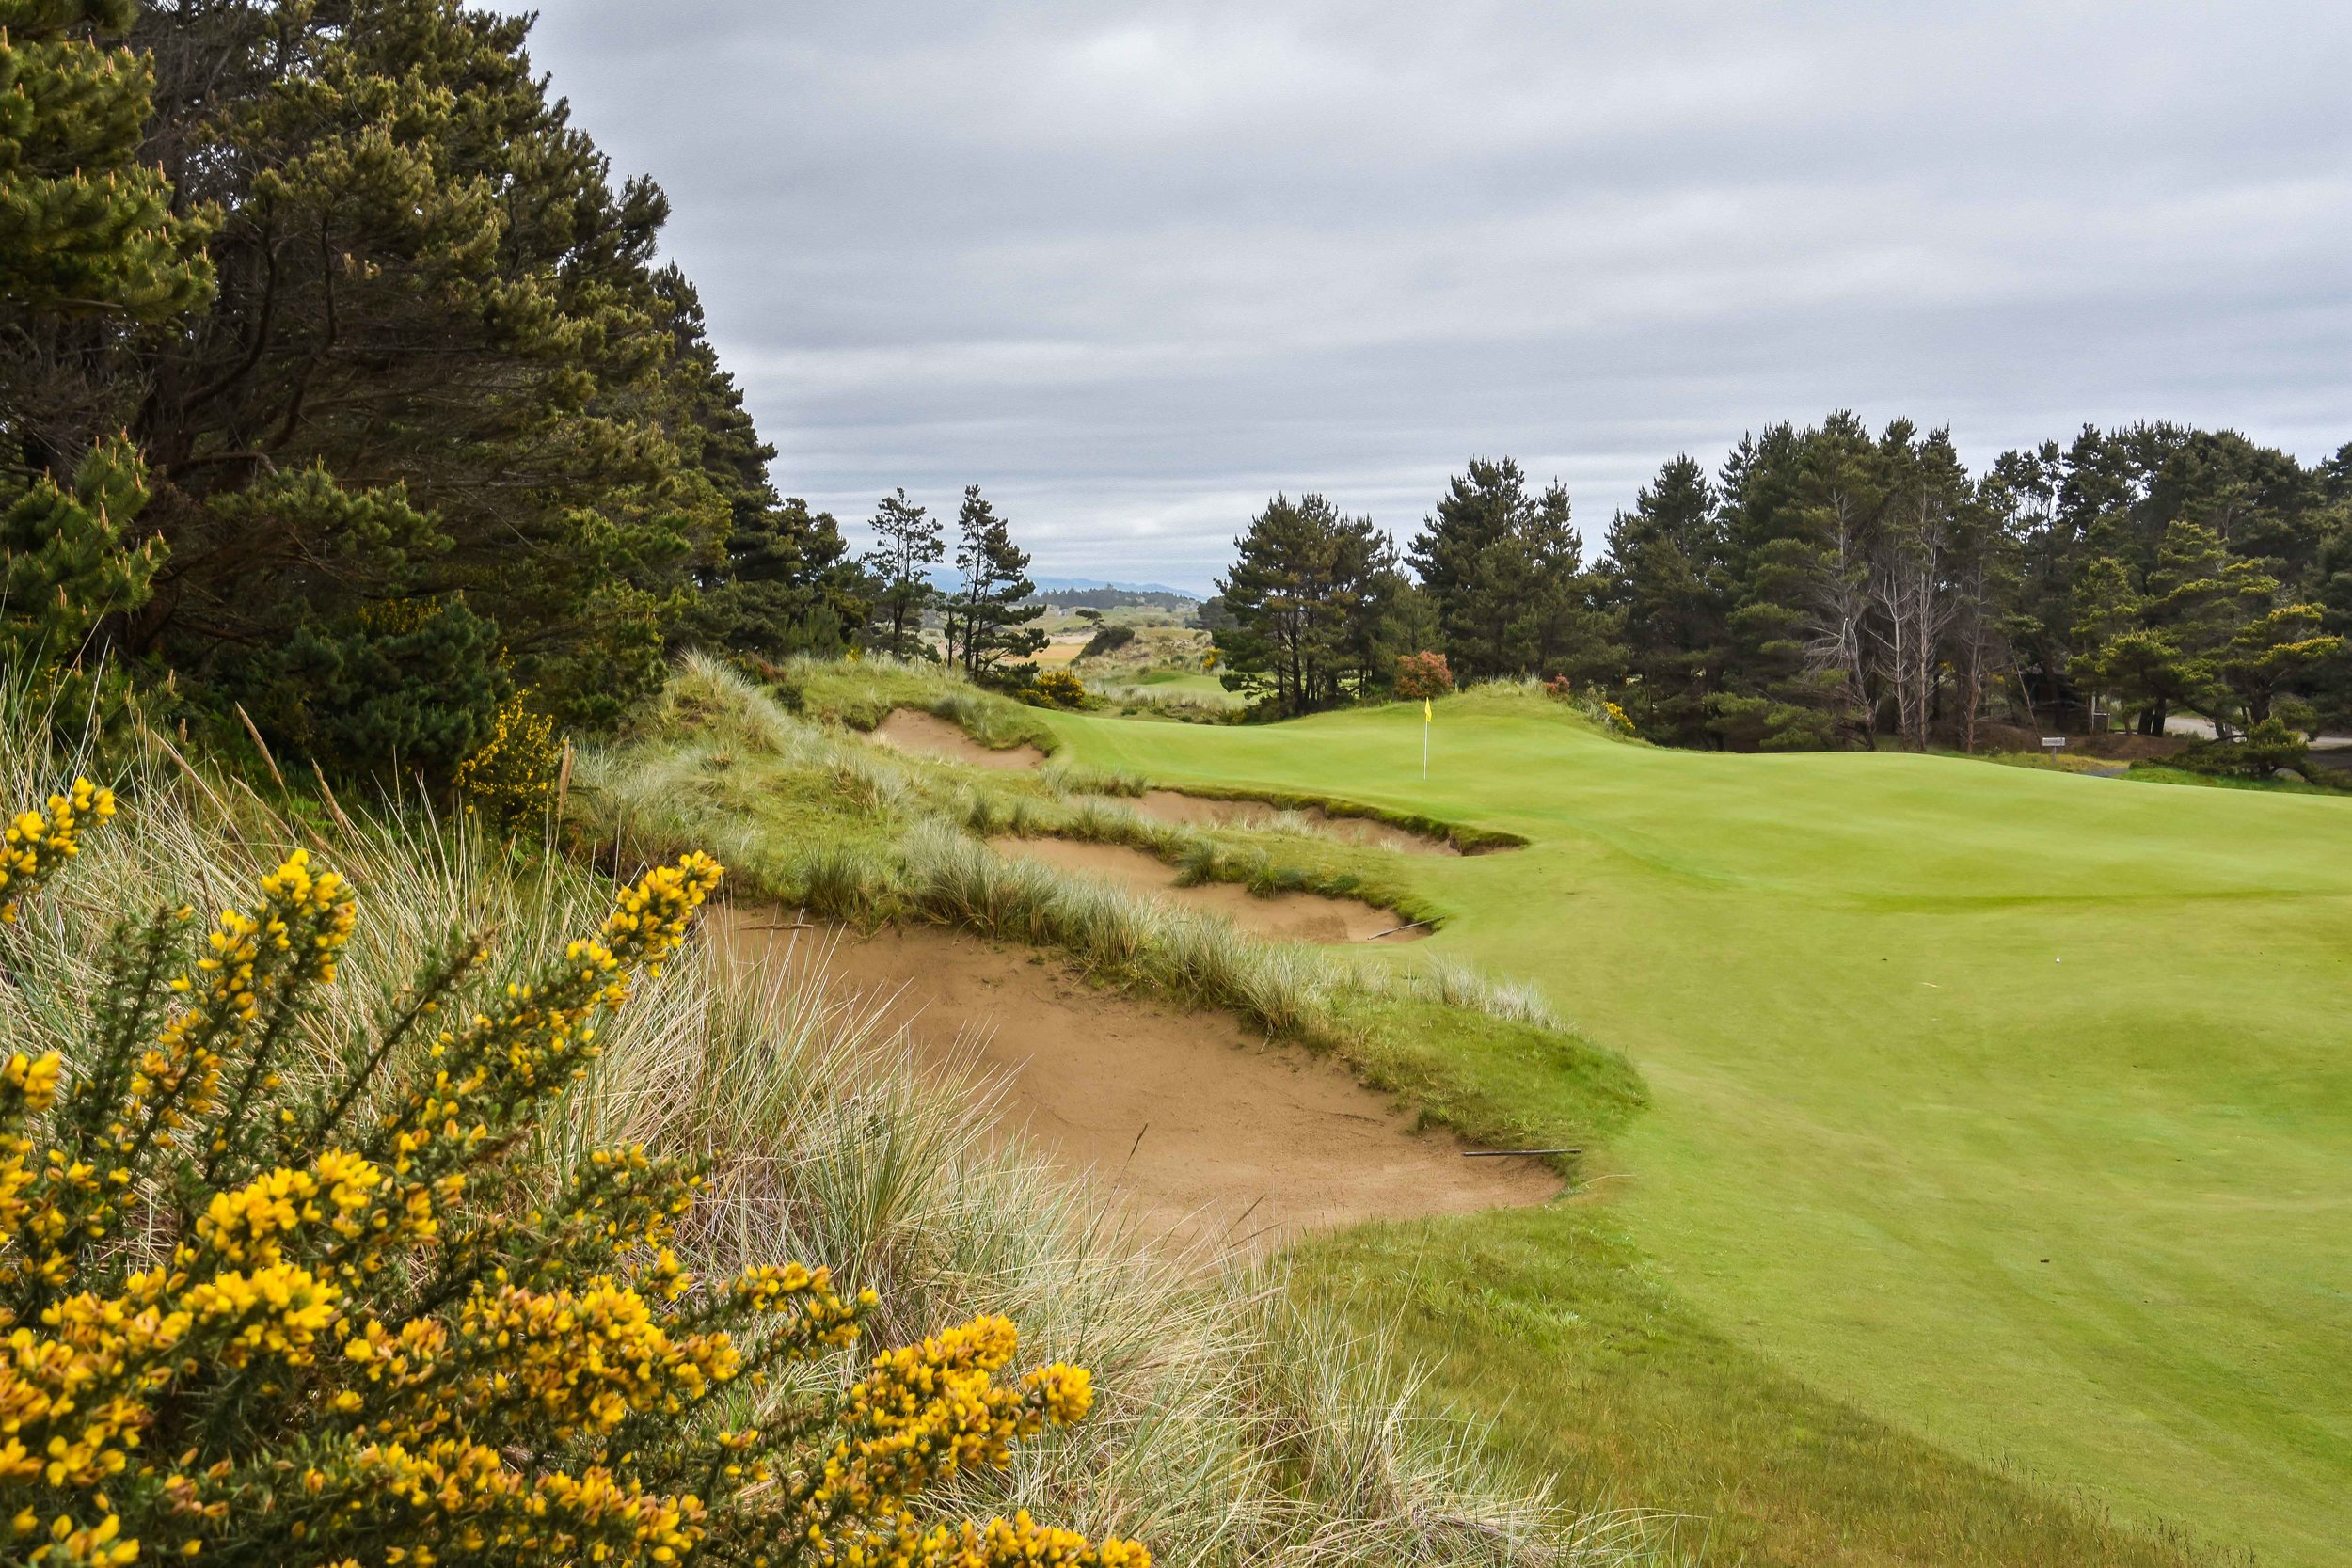 The gorse (bottom left) blooms twice a year at Bandon.